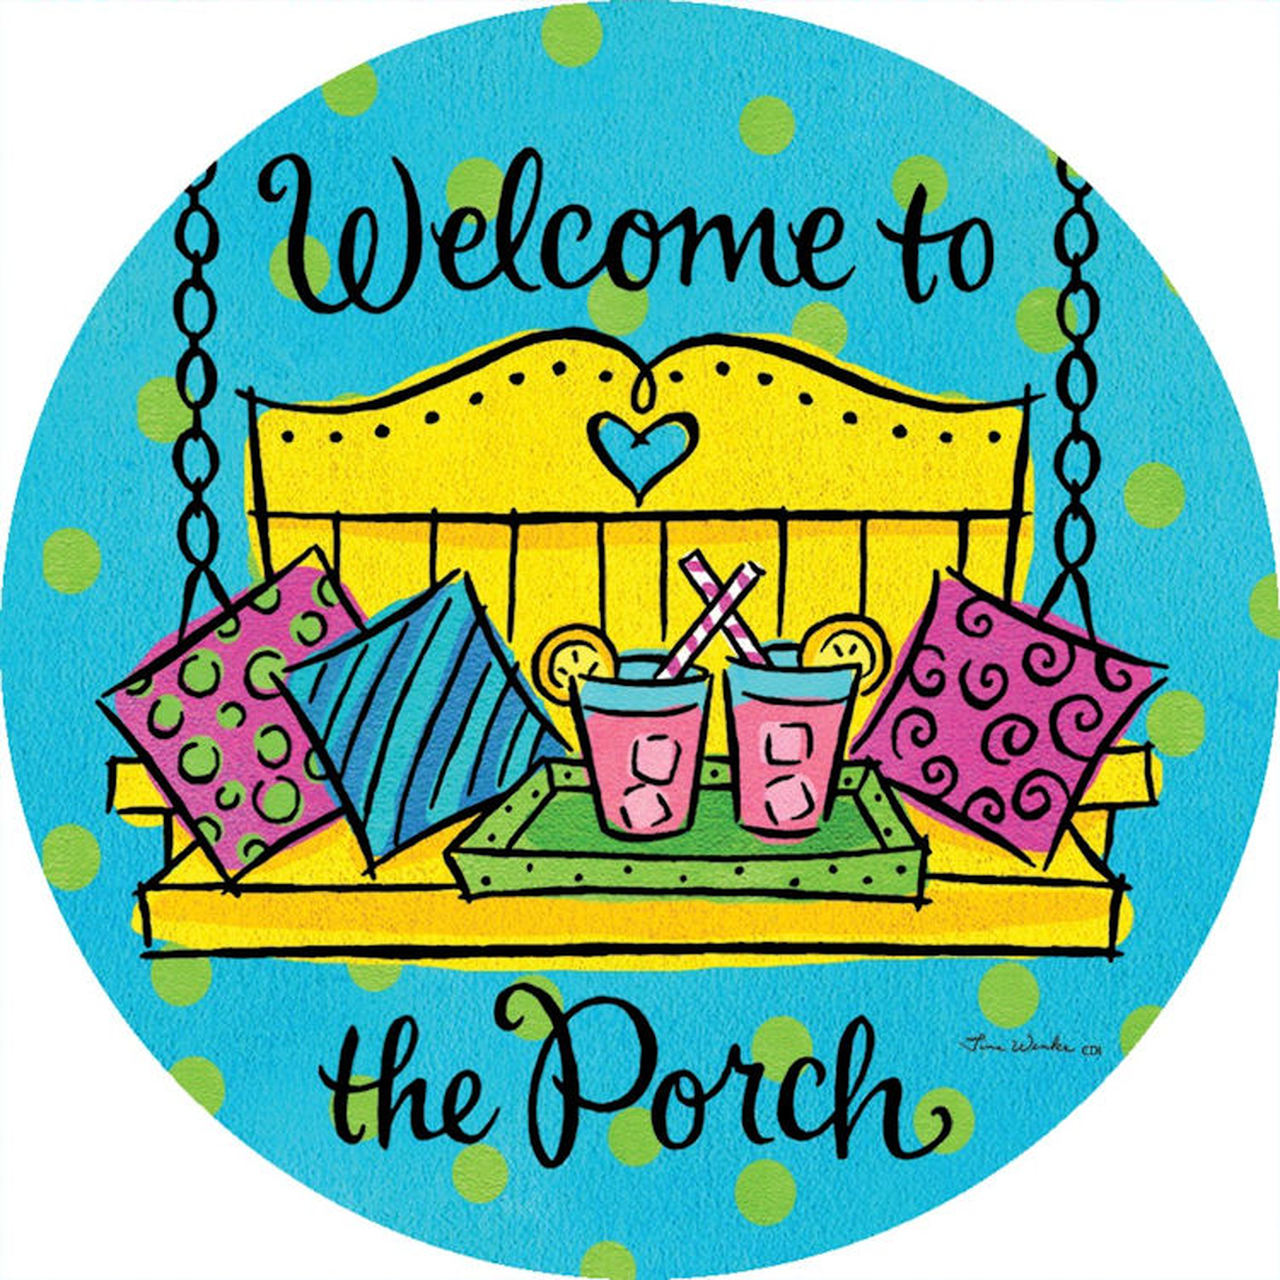 Welcome to the Porch Accent Magnet.